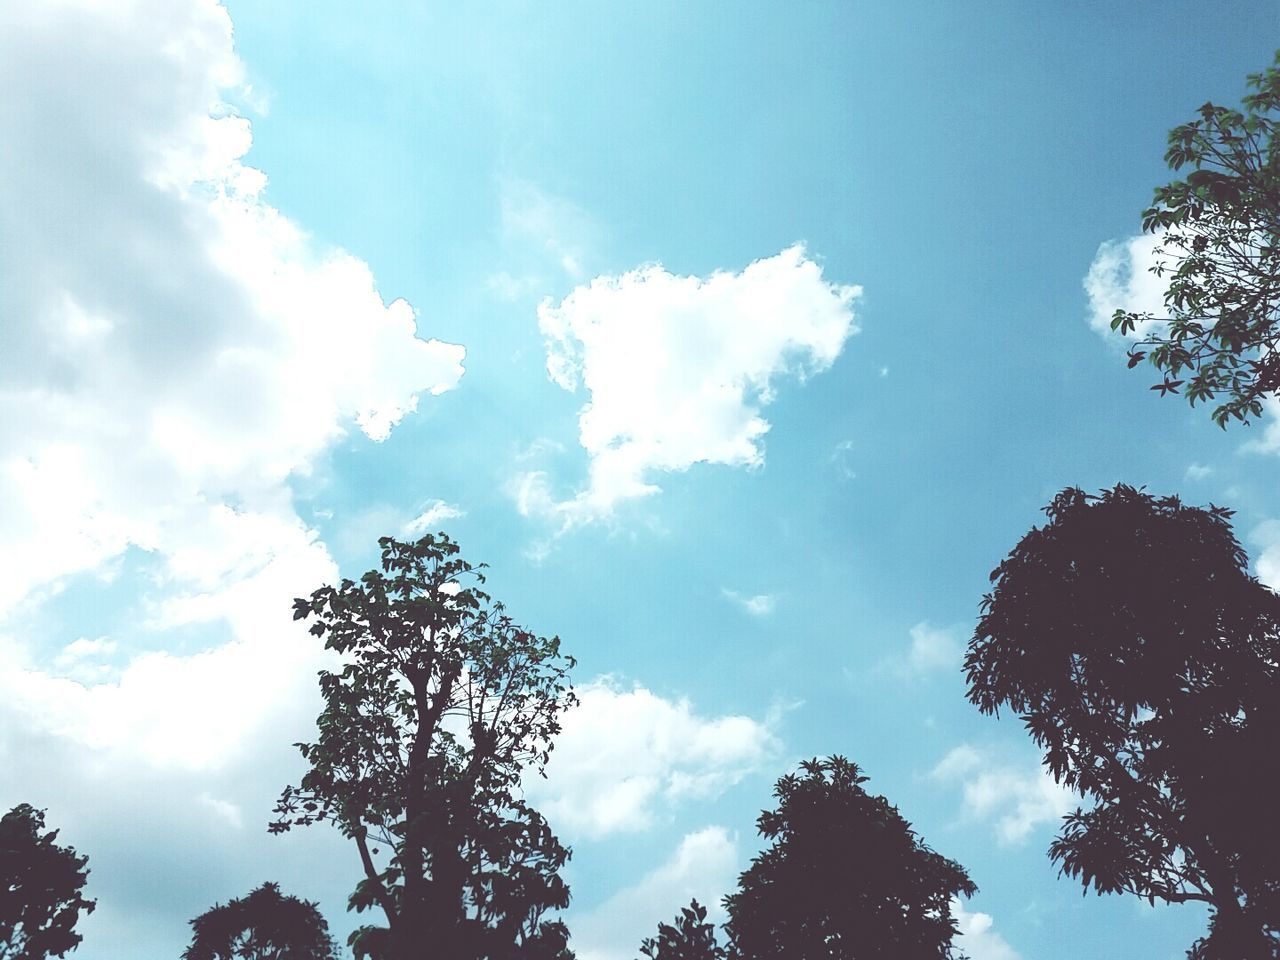 tree, sky, low angle view, nature, beauty in nature, cloud - sky, growth, day, tranquility, no people, scenics, outdoors